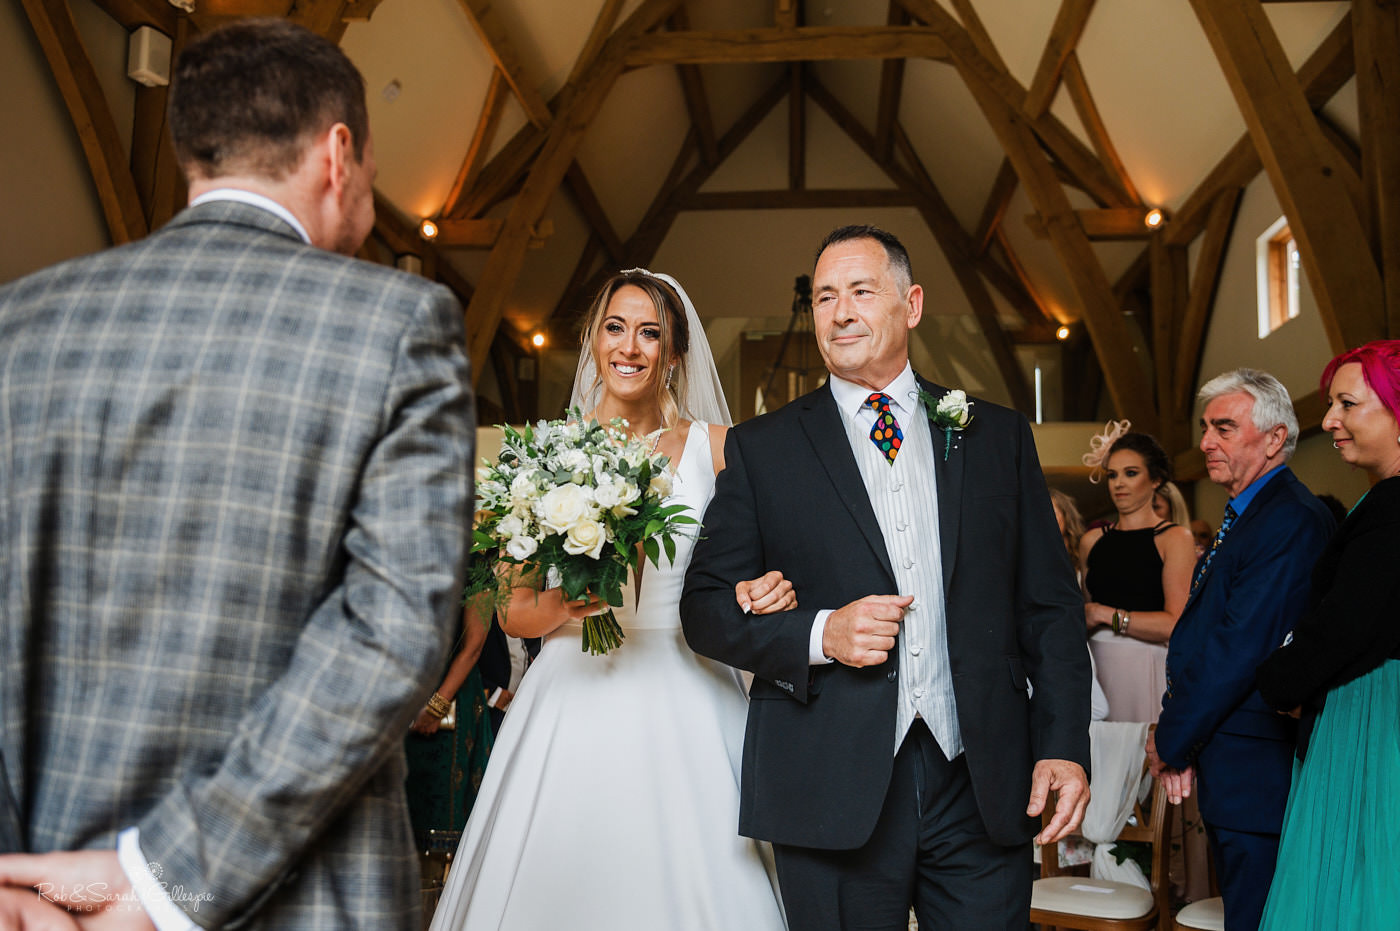 Bride and father enter wedding ceremony. Natural wedding photography at The Mill Barns